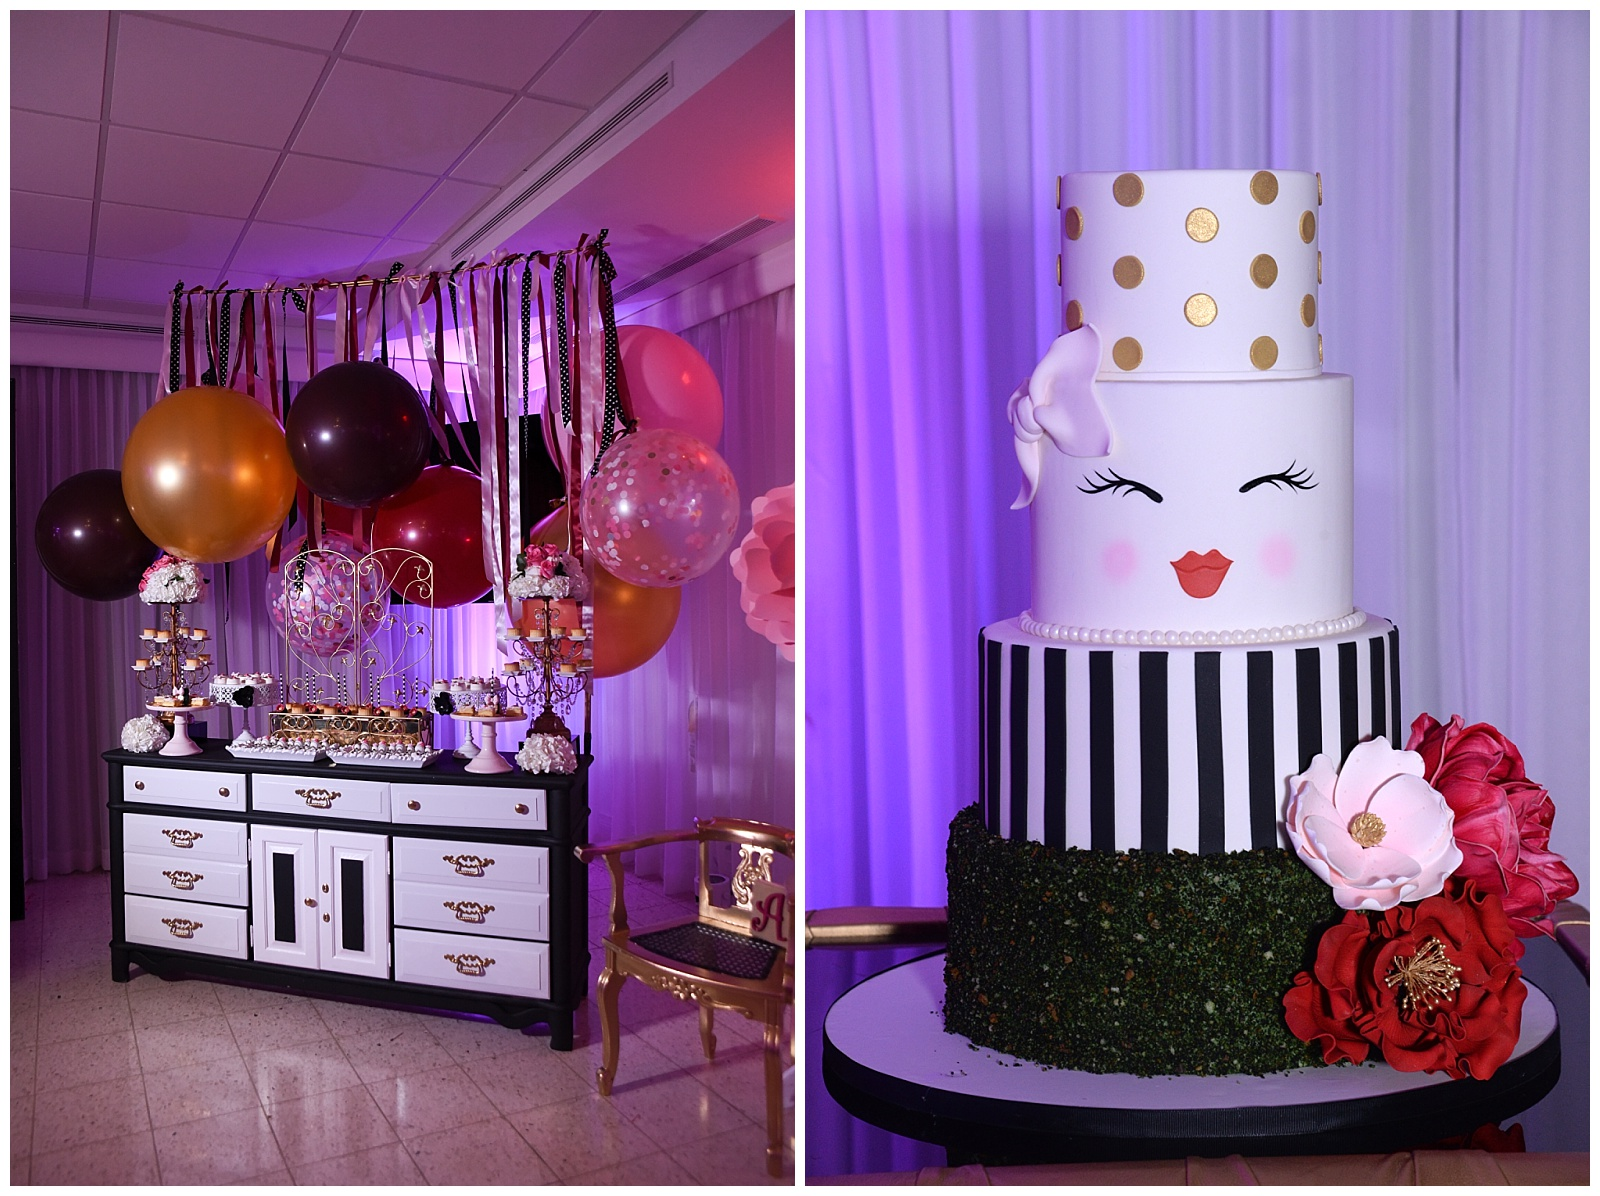 Leidy and Mikes Baby Shower Cake Desserts Elegant Temptations